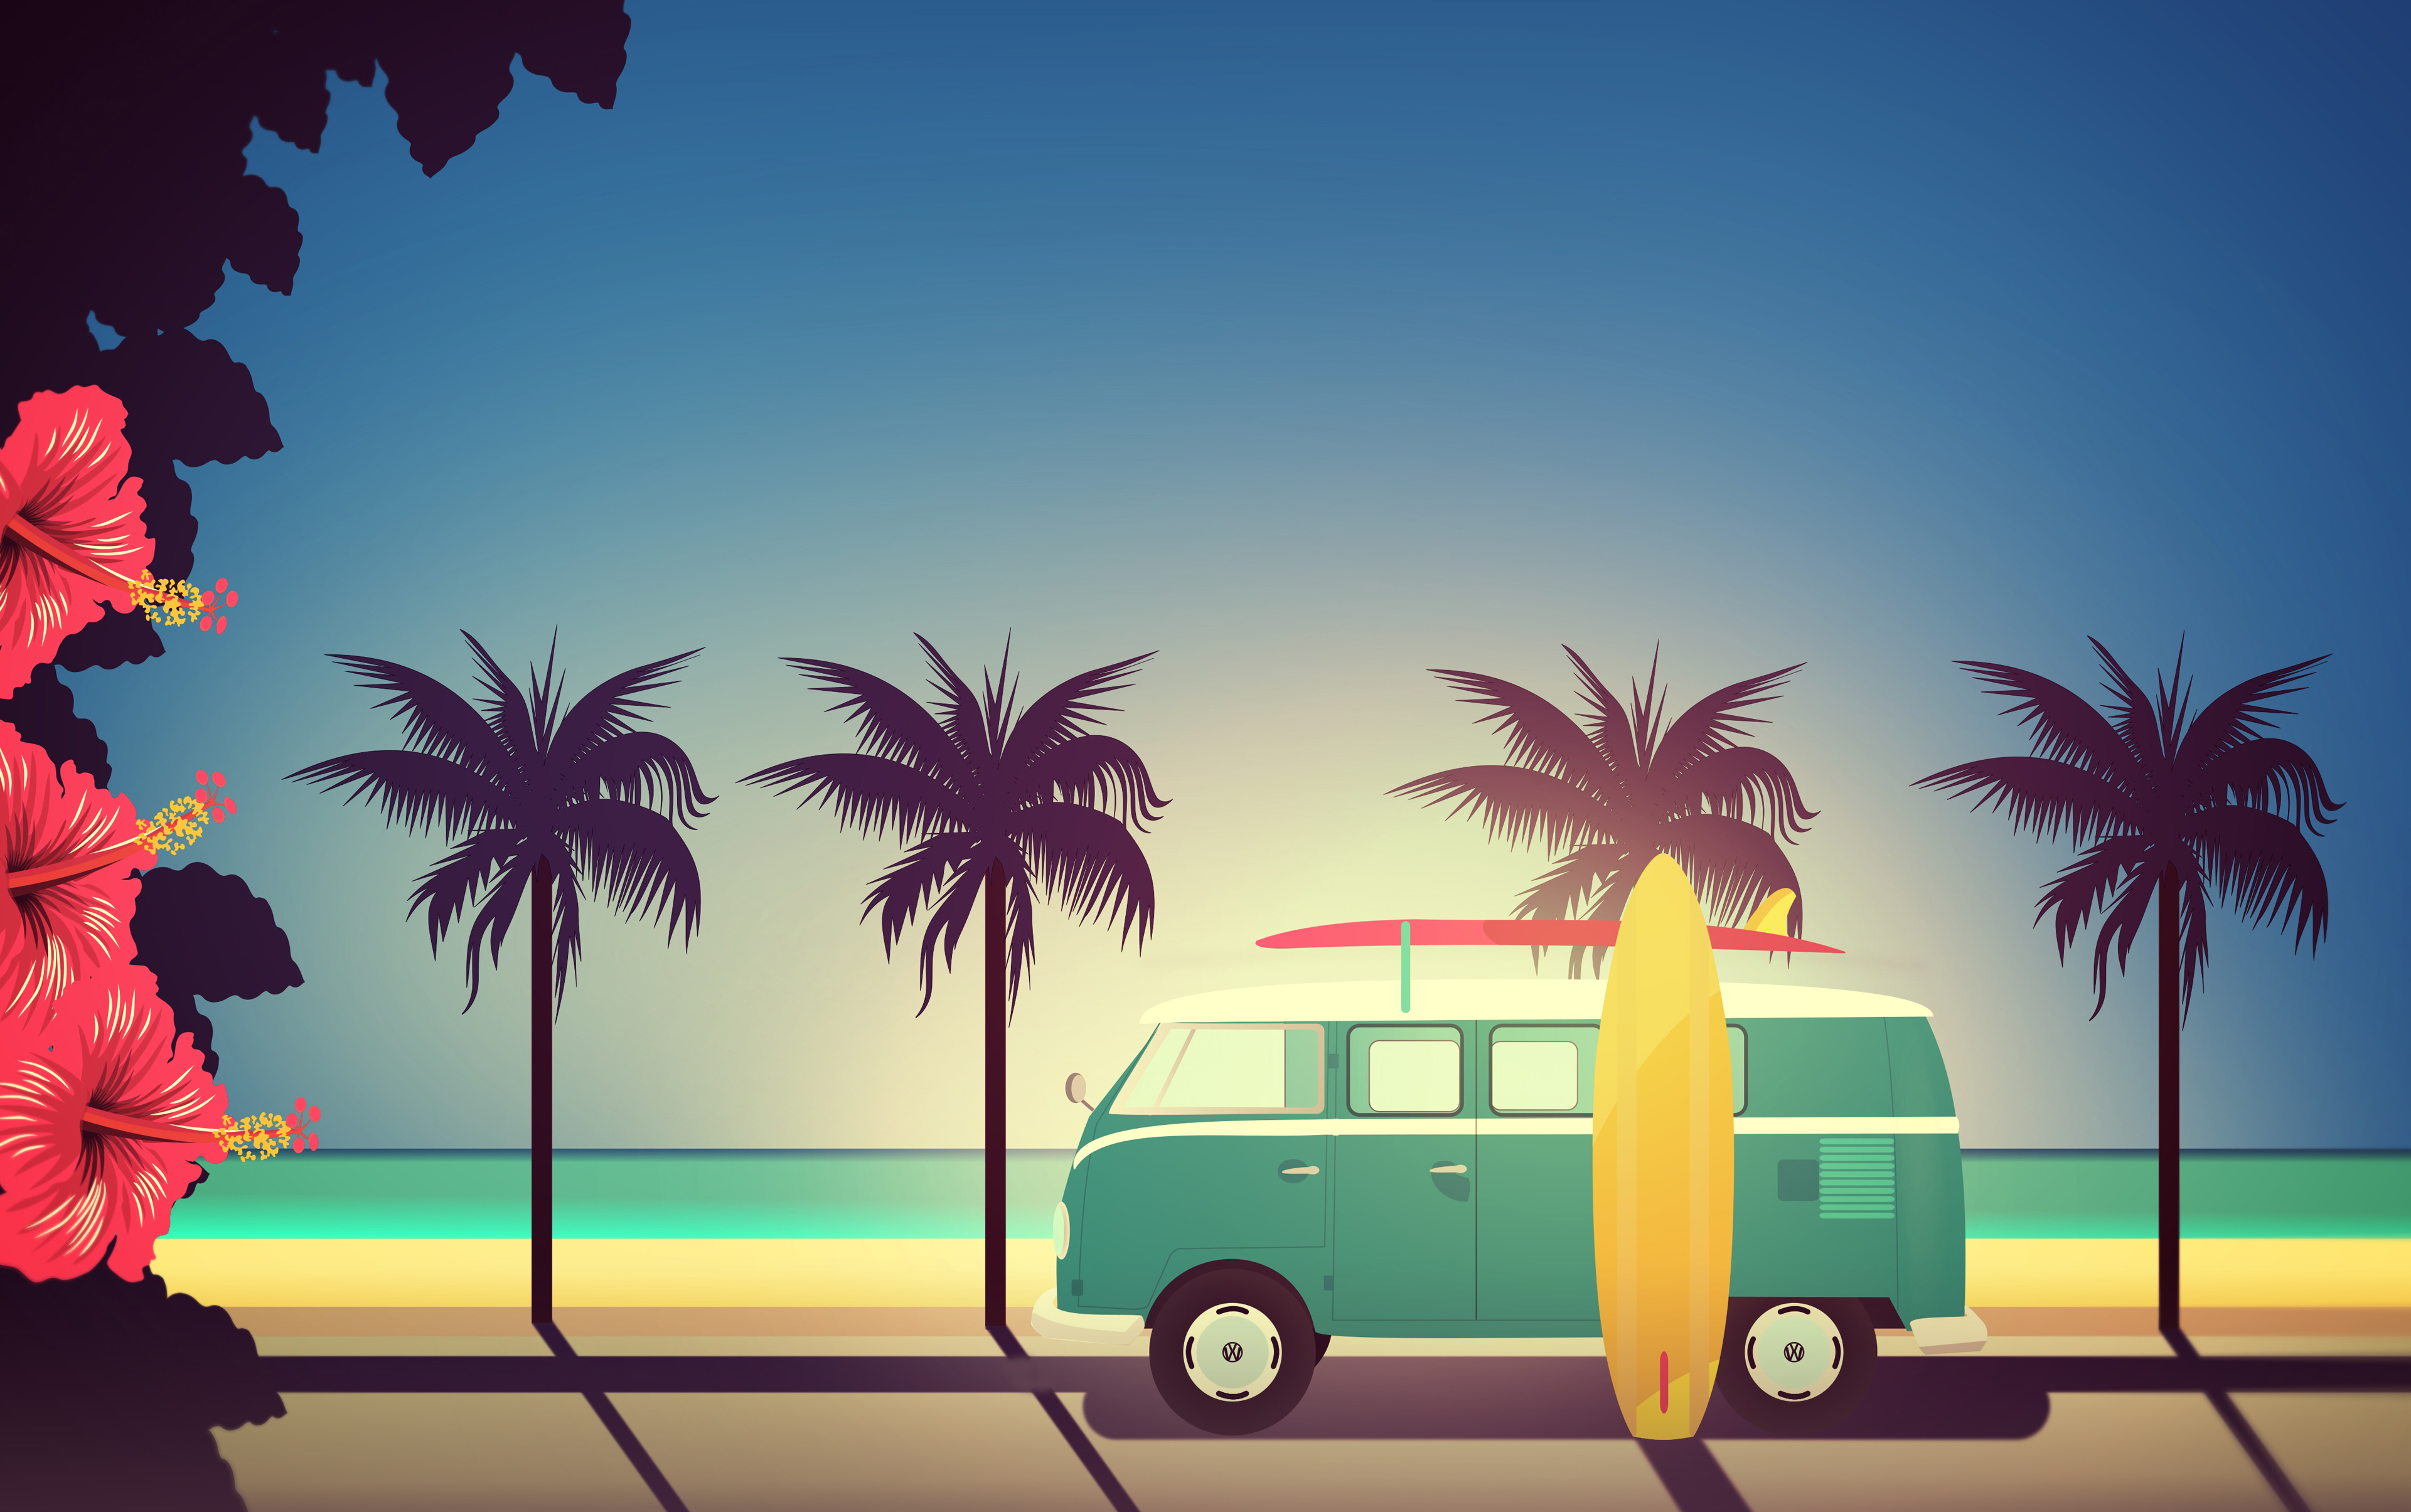 End of summer - illustration with surfers van with copyspace photo